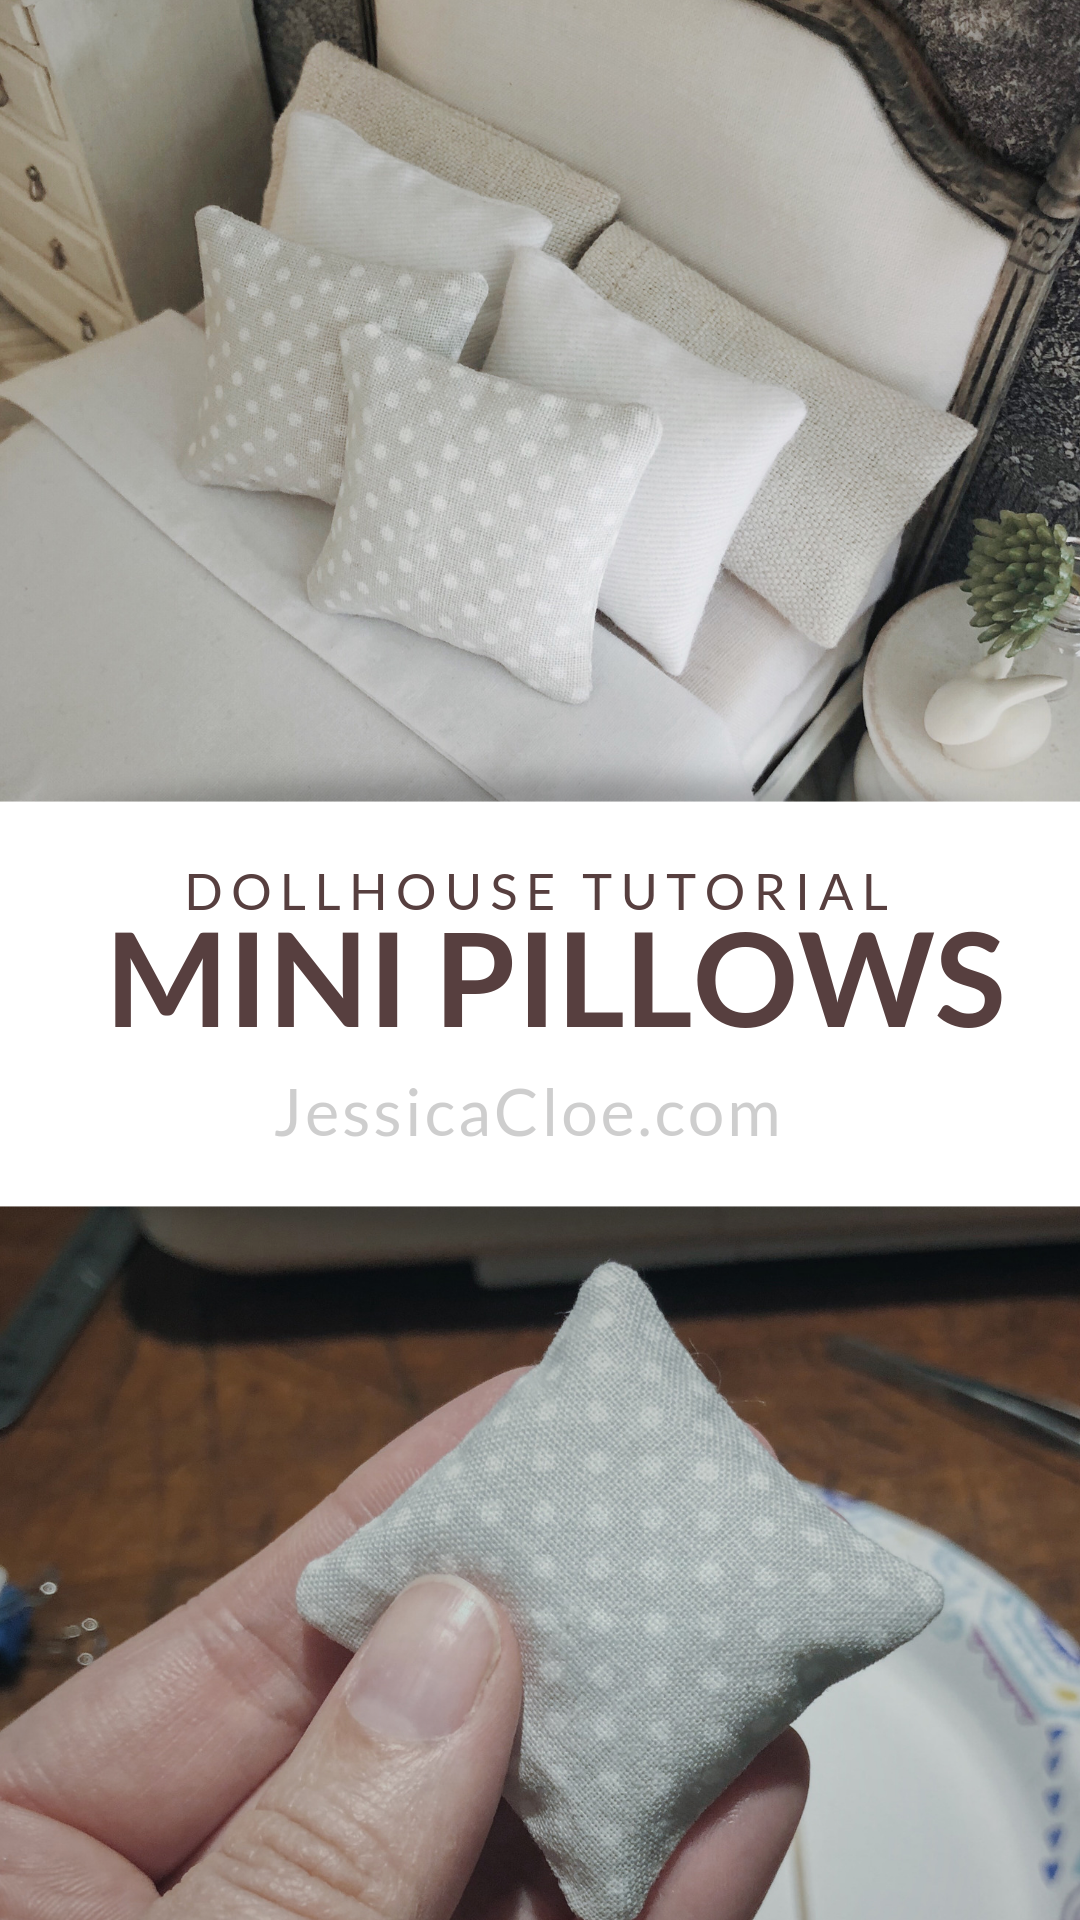 DIY Dollhouse Pillows — Jessica Cloe Miniatures